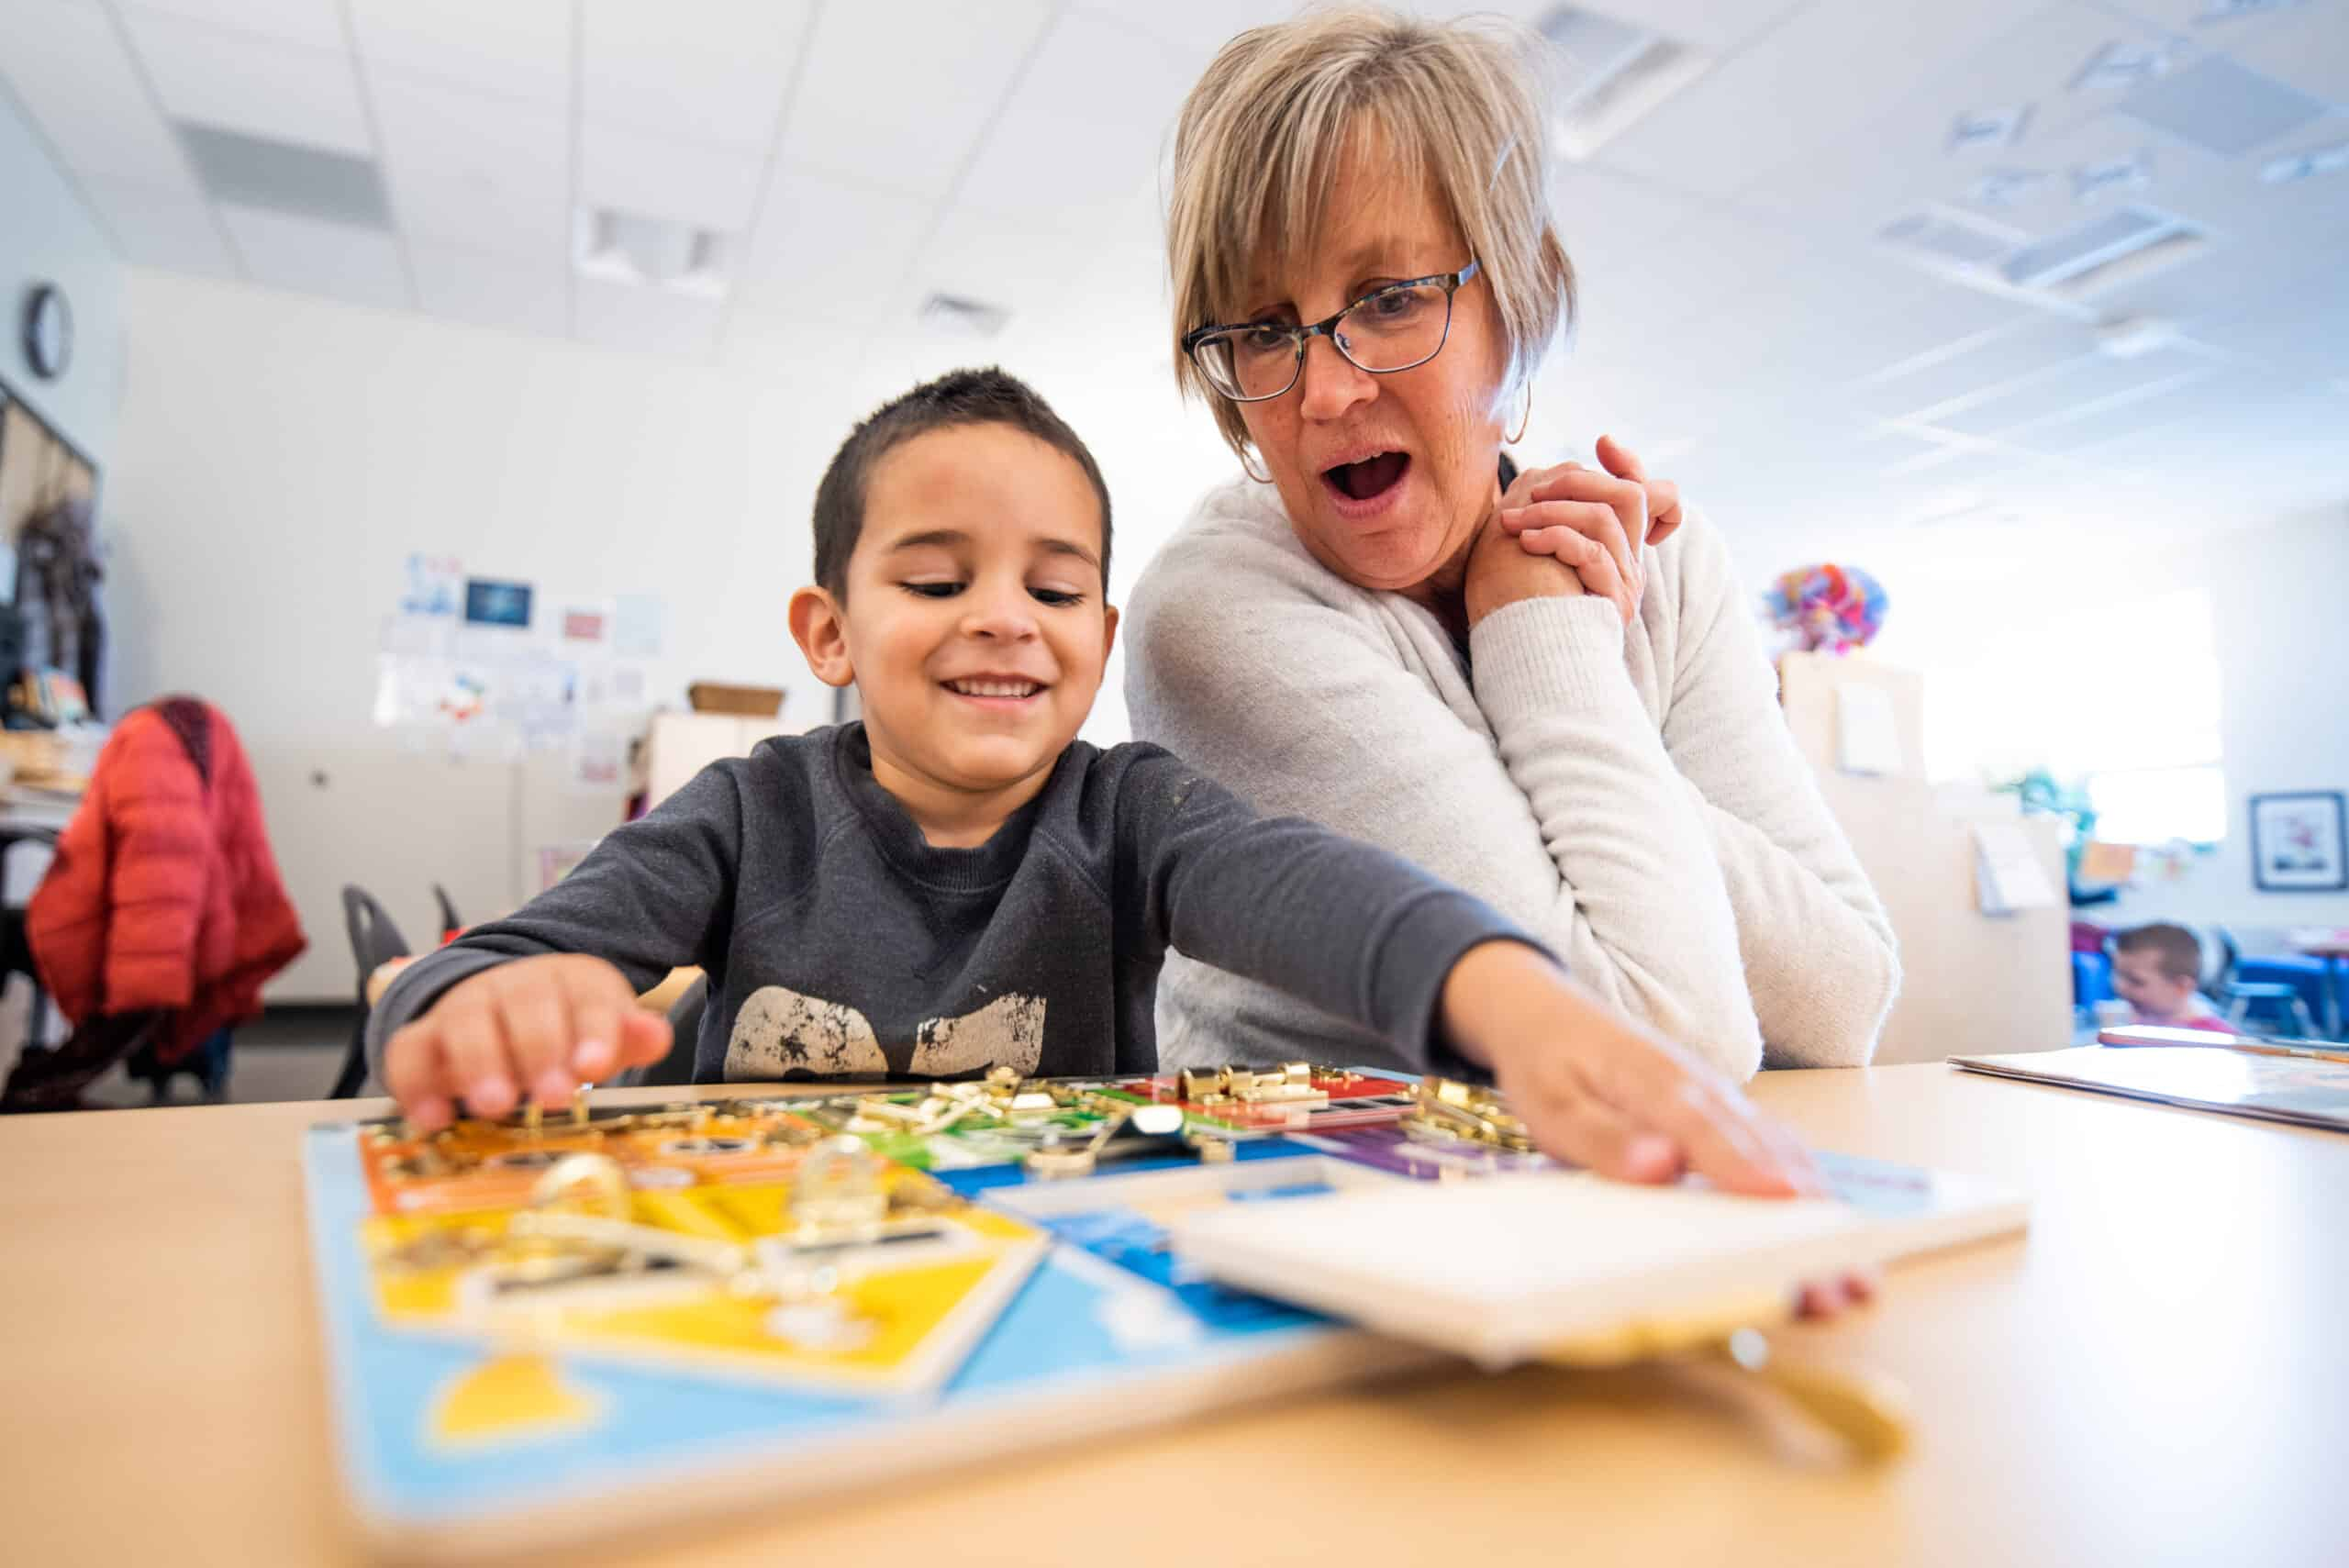 Grand View Elementary preschooler and Joan Scheuerman learning together